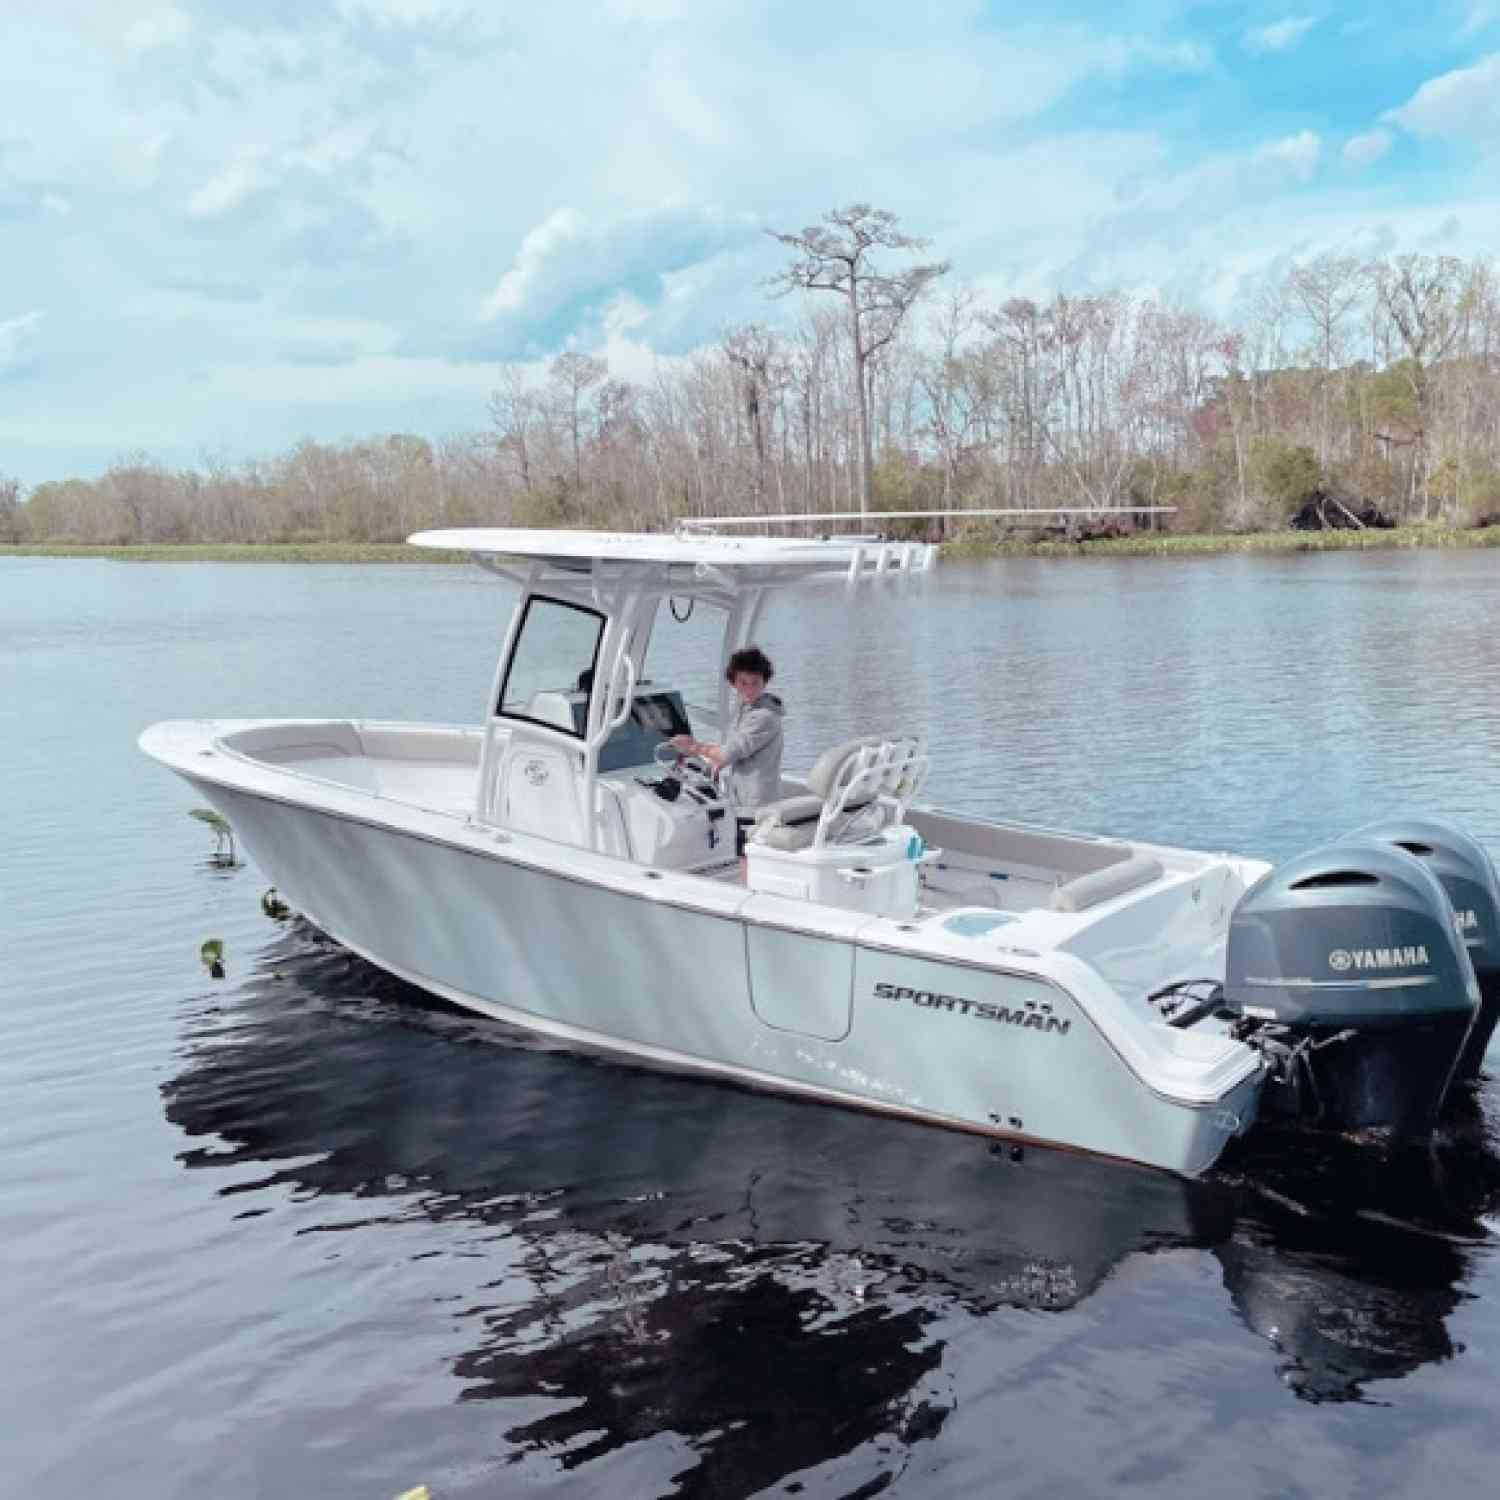 Title: First day out - On board their Sportsman Open 252 Center Console - Location: St Johns river Jacksonville florida. Participating in the Photo Contest #SportsmanMarch2021